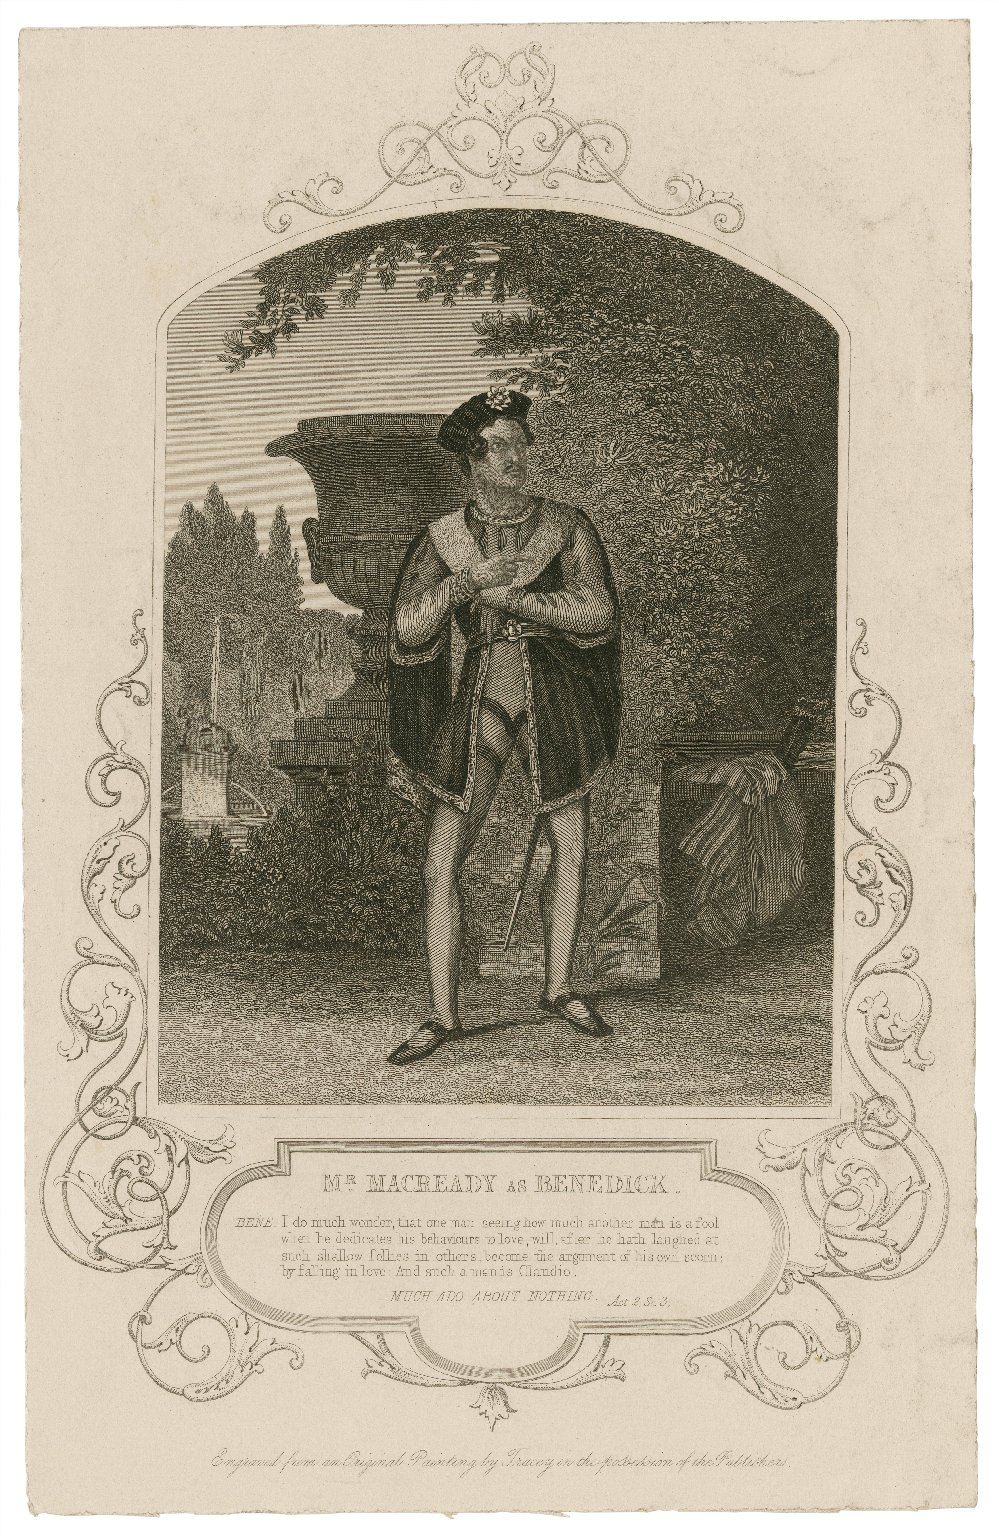 Mr. Macready as Benedick ... [in Shakespeare's Much ado about nothing] [graphic] / engraved from an original painting by [H.] Tracey in the possession of the publishers.